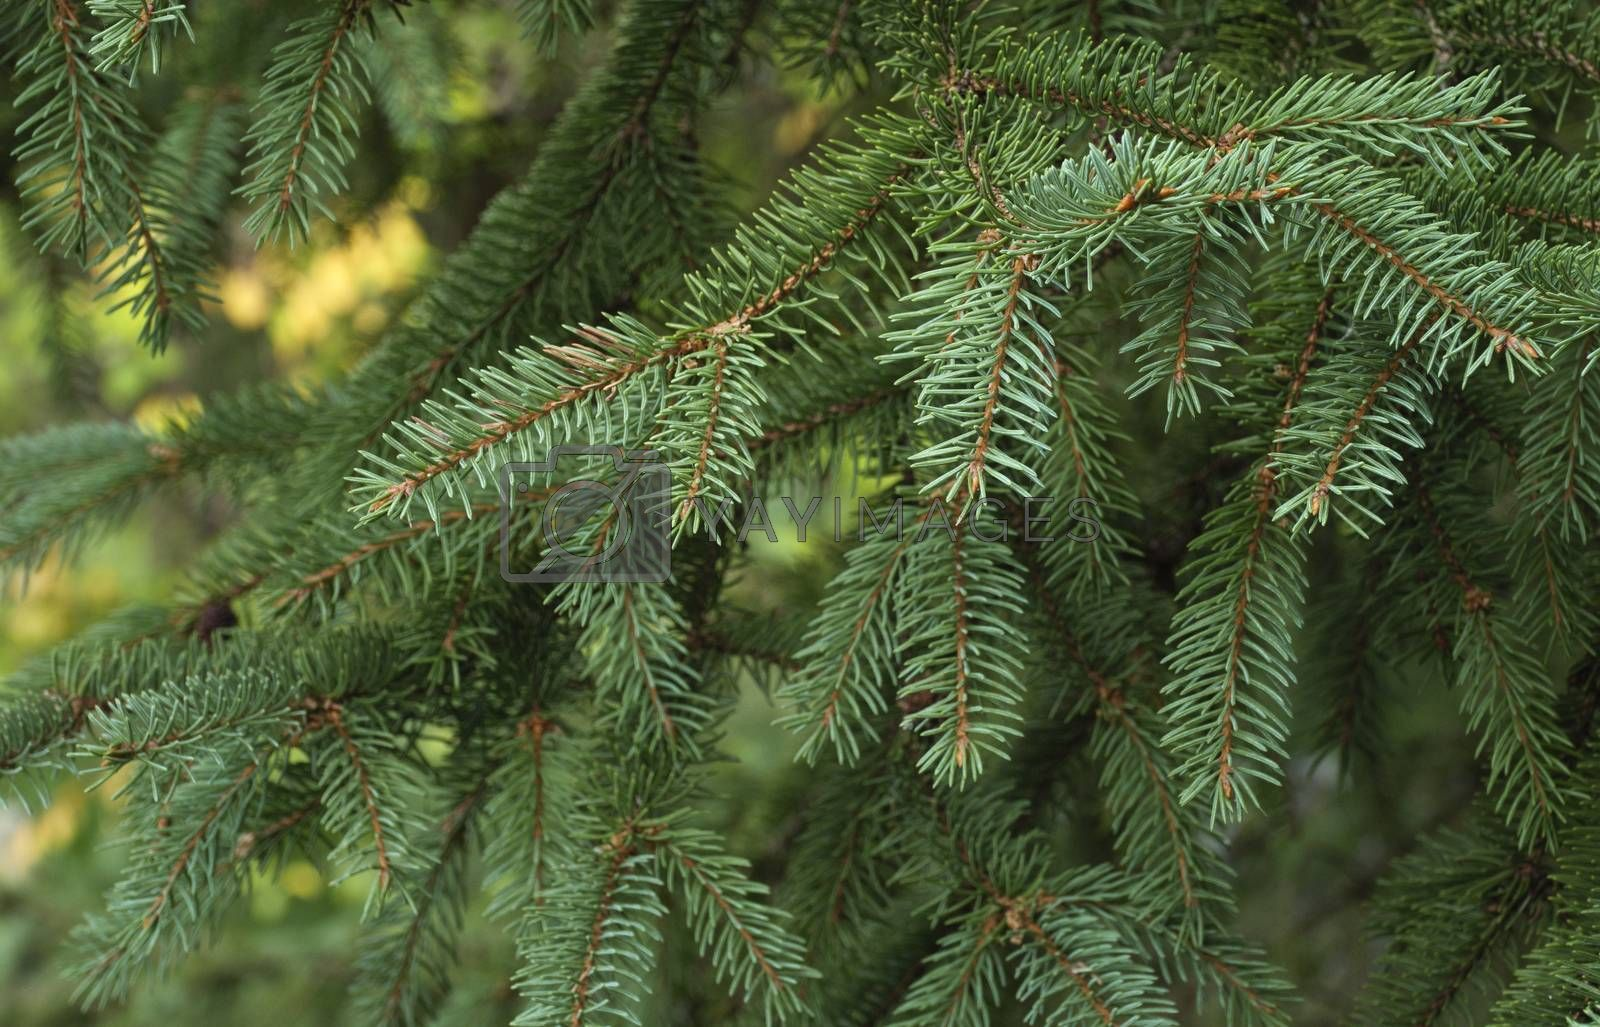 Royalty free image of Fir tree branch background close up by phortcach